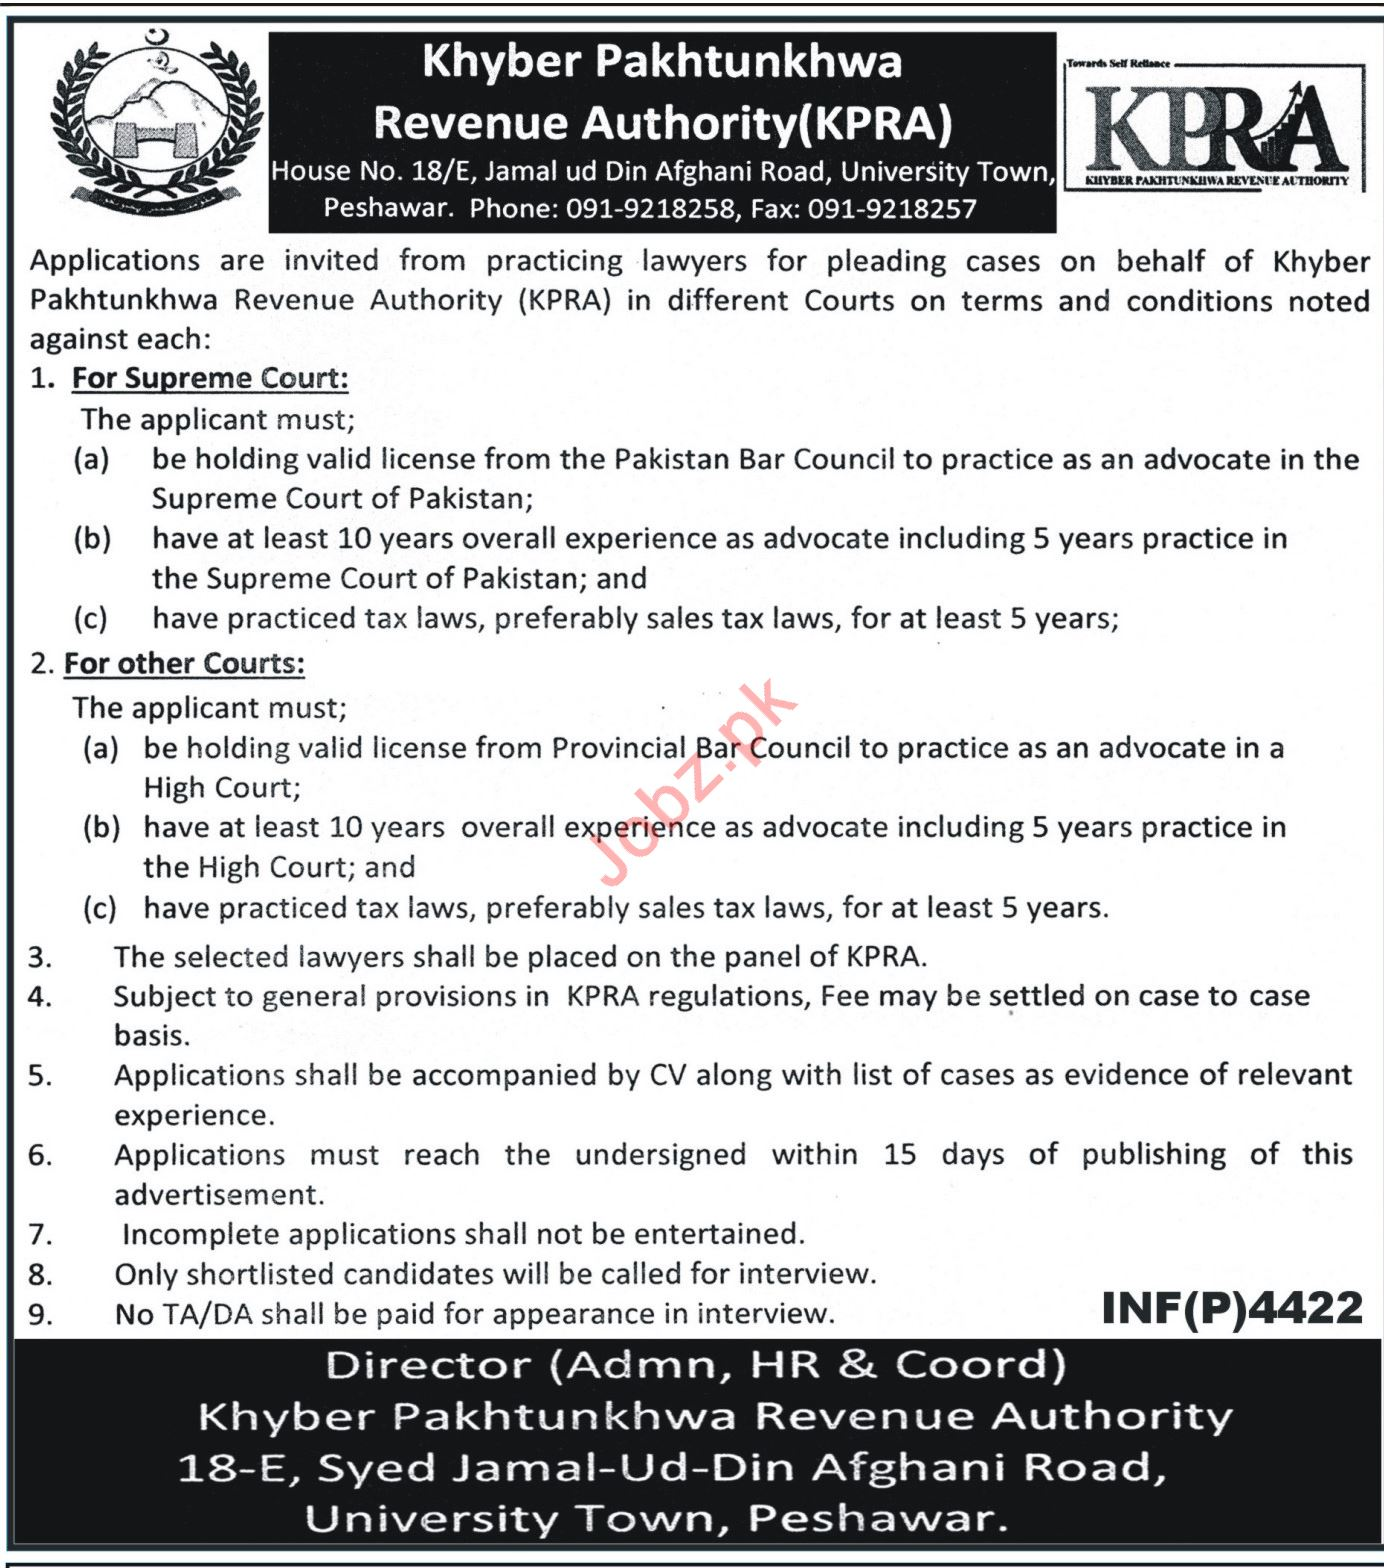 Lawyers Career Opportunities at KPRA